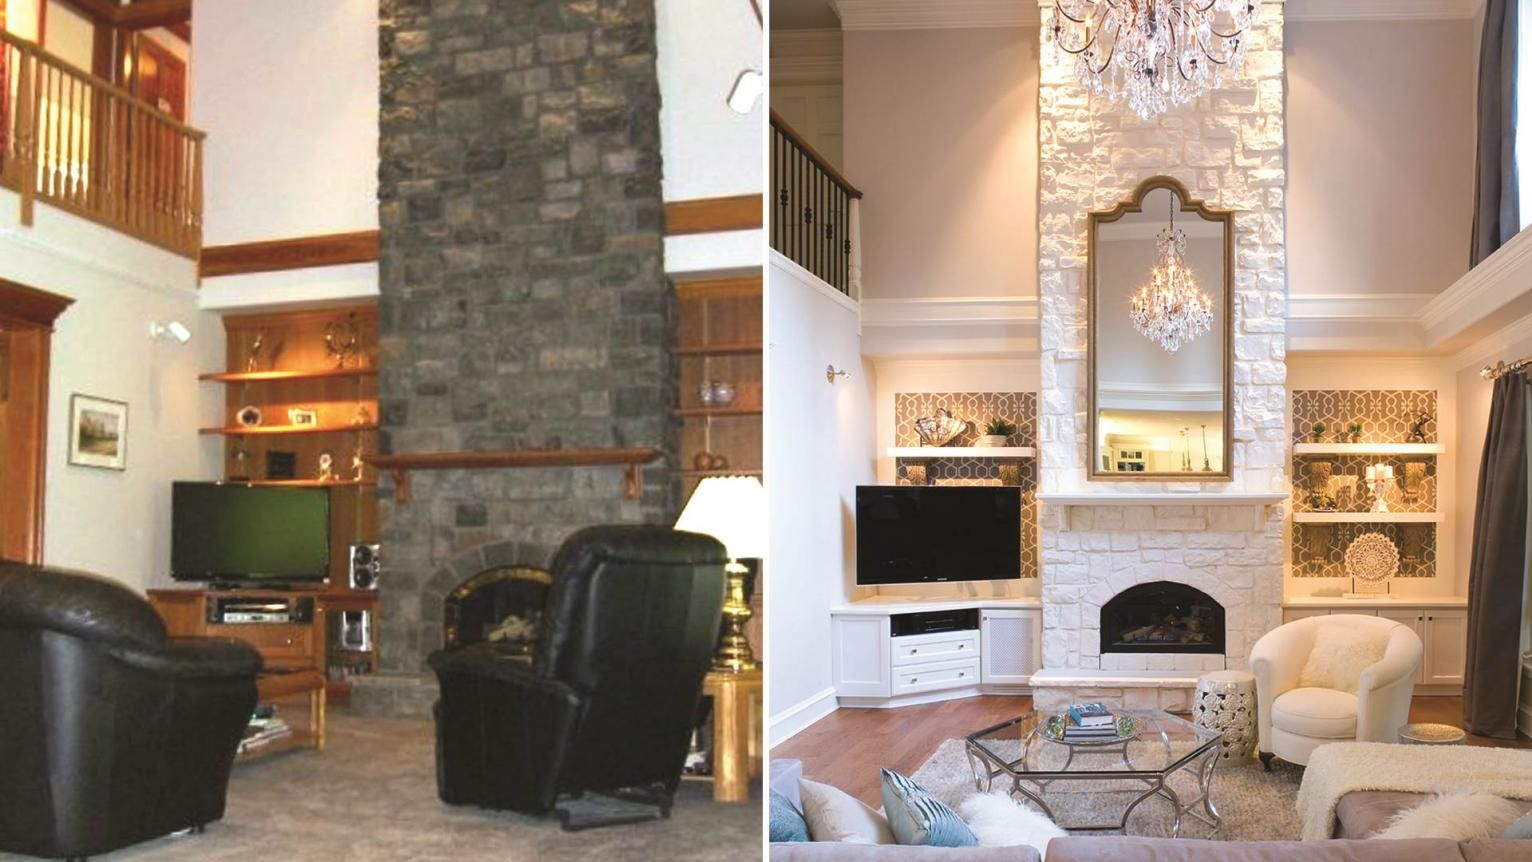 Contemporary room renovations with mirror above fireplace mantel